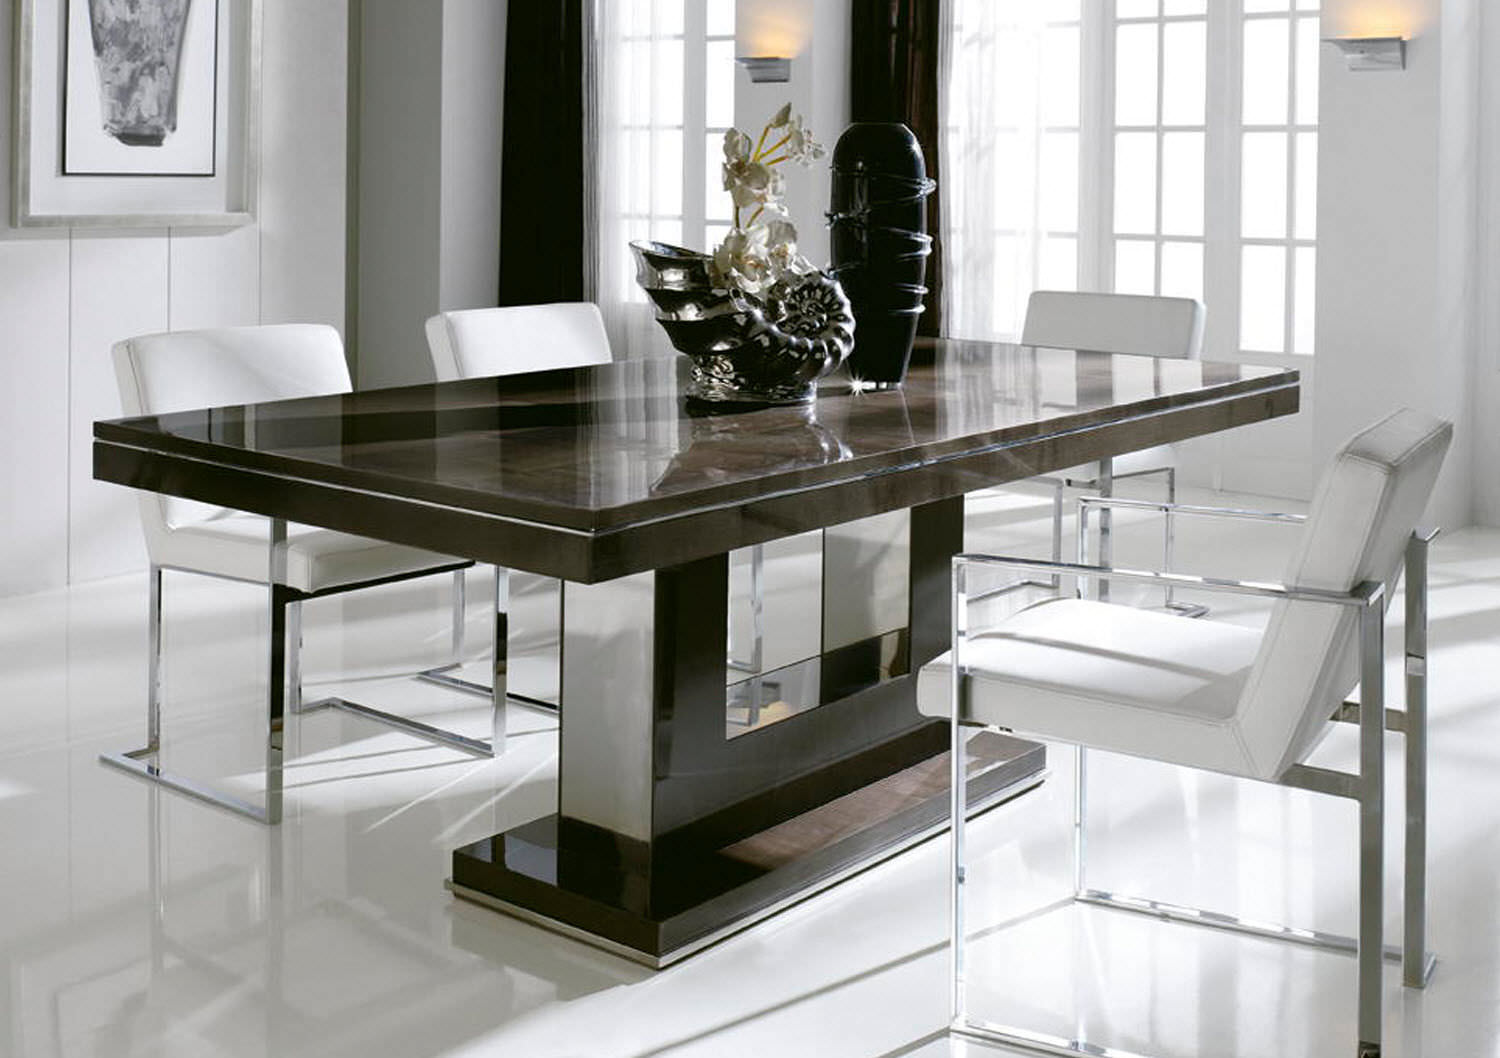 Designer Dining Tables Design Inspiration Home Interiors Across Rh Infrachemsolution Com